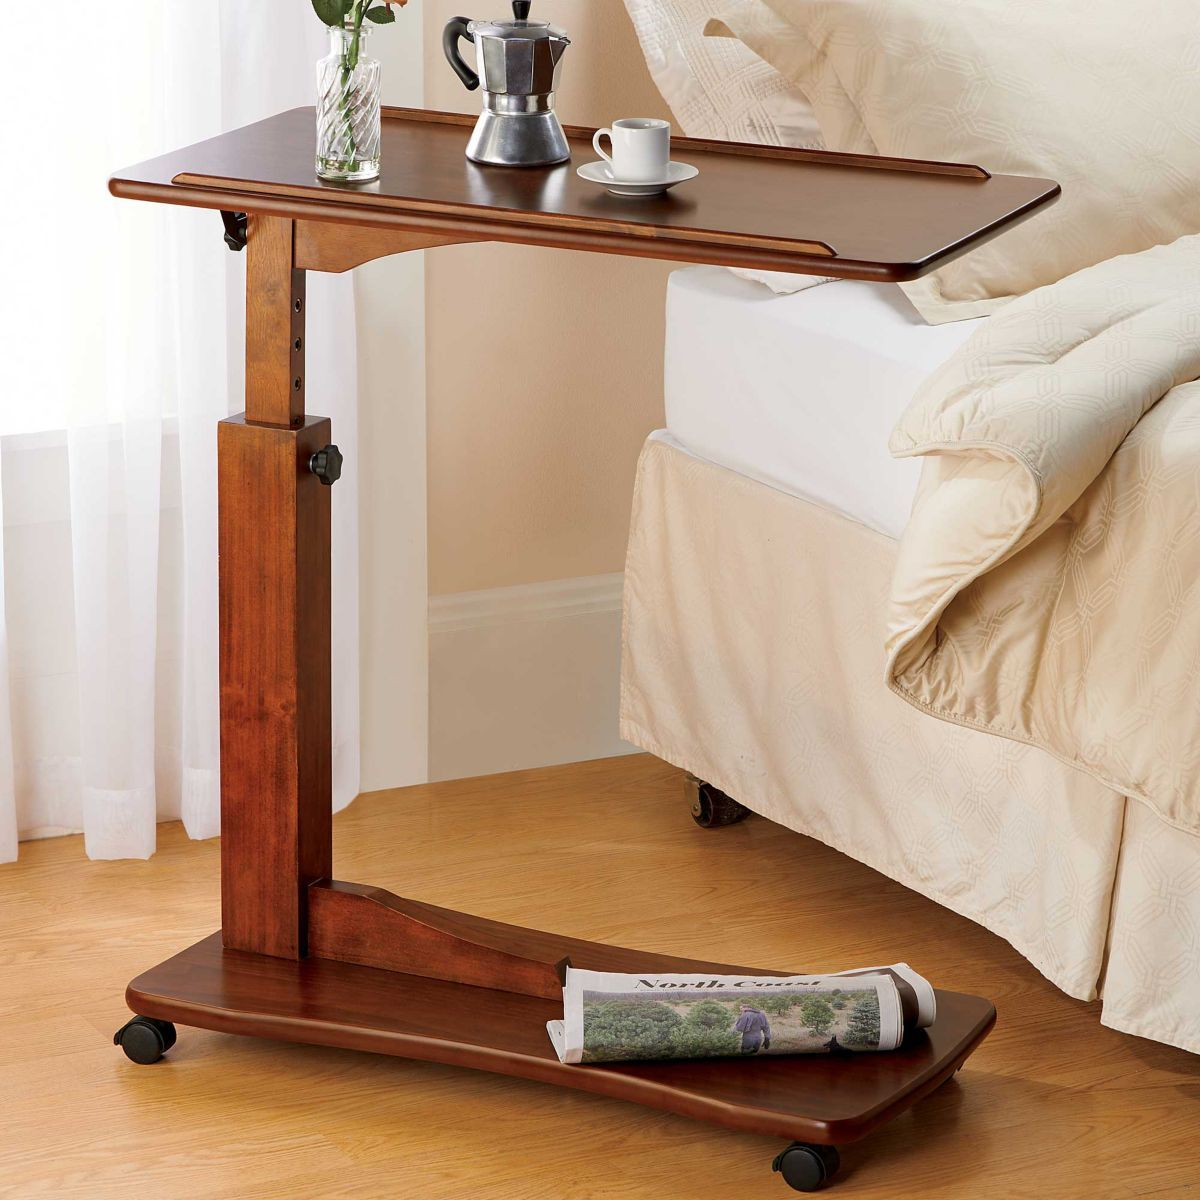 Adjustable Bedside Table Bed Tray Diy Bedside Table Diy Bed Table